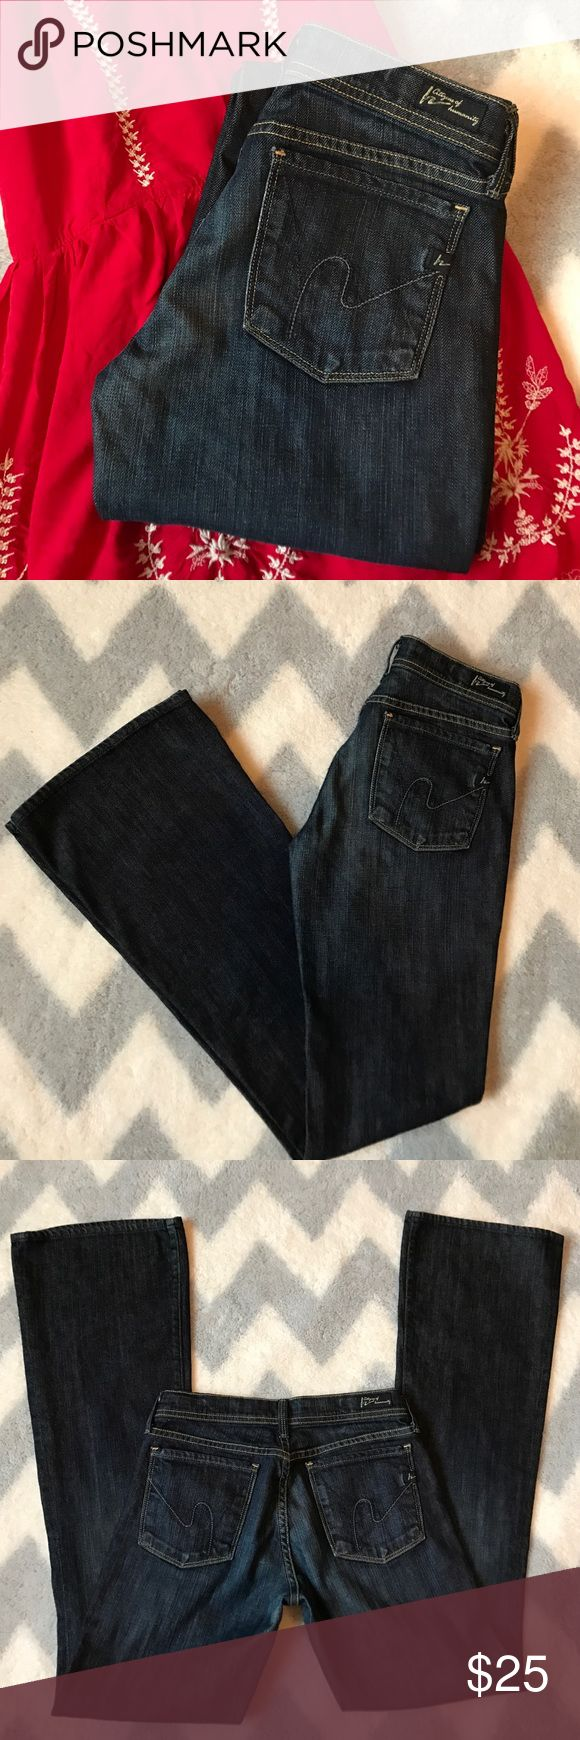 🦋 SALE! Citizens of Humanity jeans Citizens of Humanity jeans, style is Ingrid #002 stretch, low waist flare. Dark wash, excellent condition no rips or stains. Citizens of Humanity Jeans